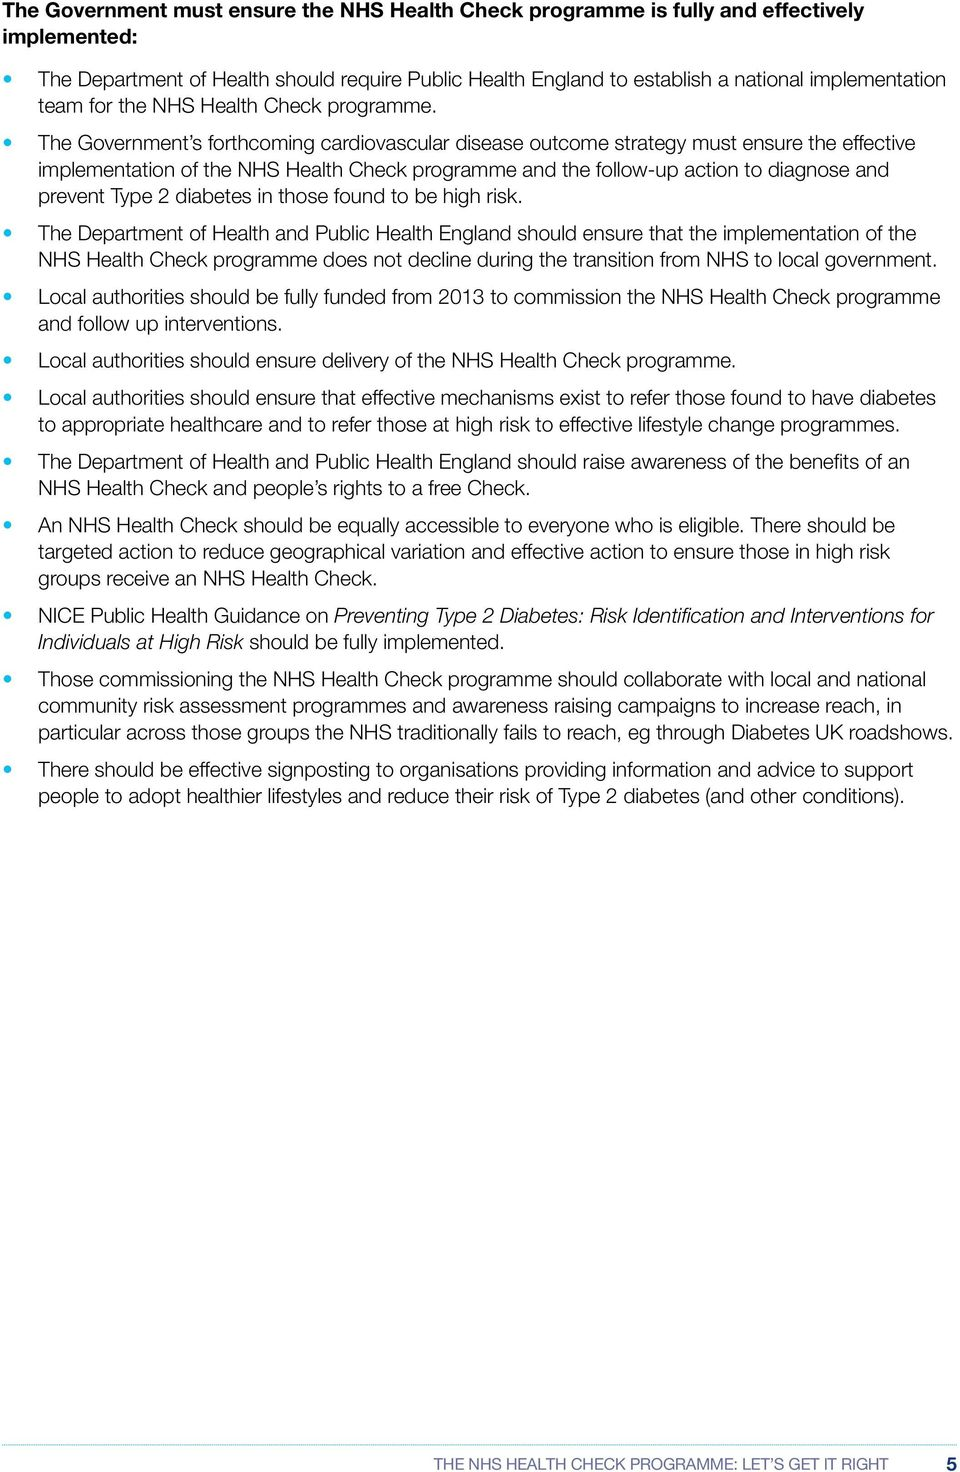 The Government s forthcoming cardiovascular disease outcome strategy must ensure the effective implementation of the NHS Health Check programme and the follow-up action to diagnose and prevent Type 2